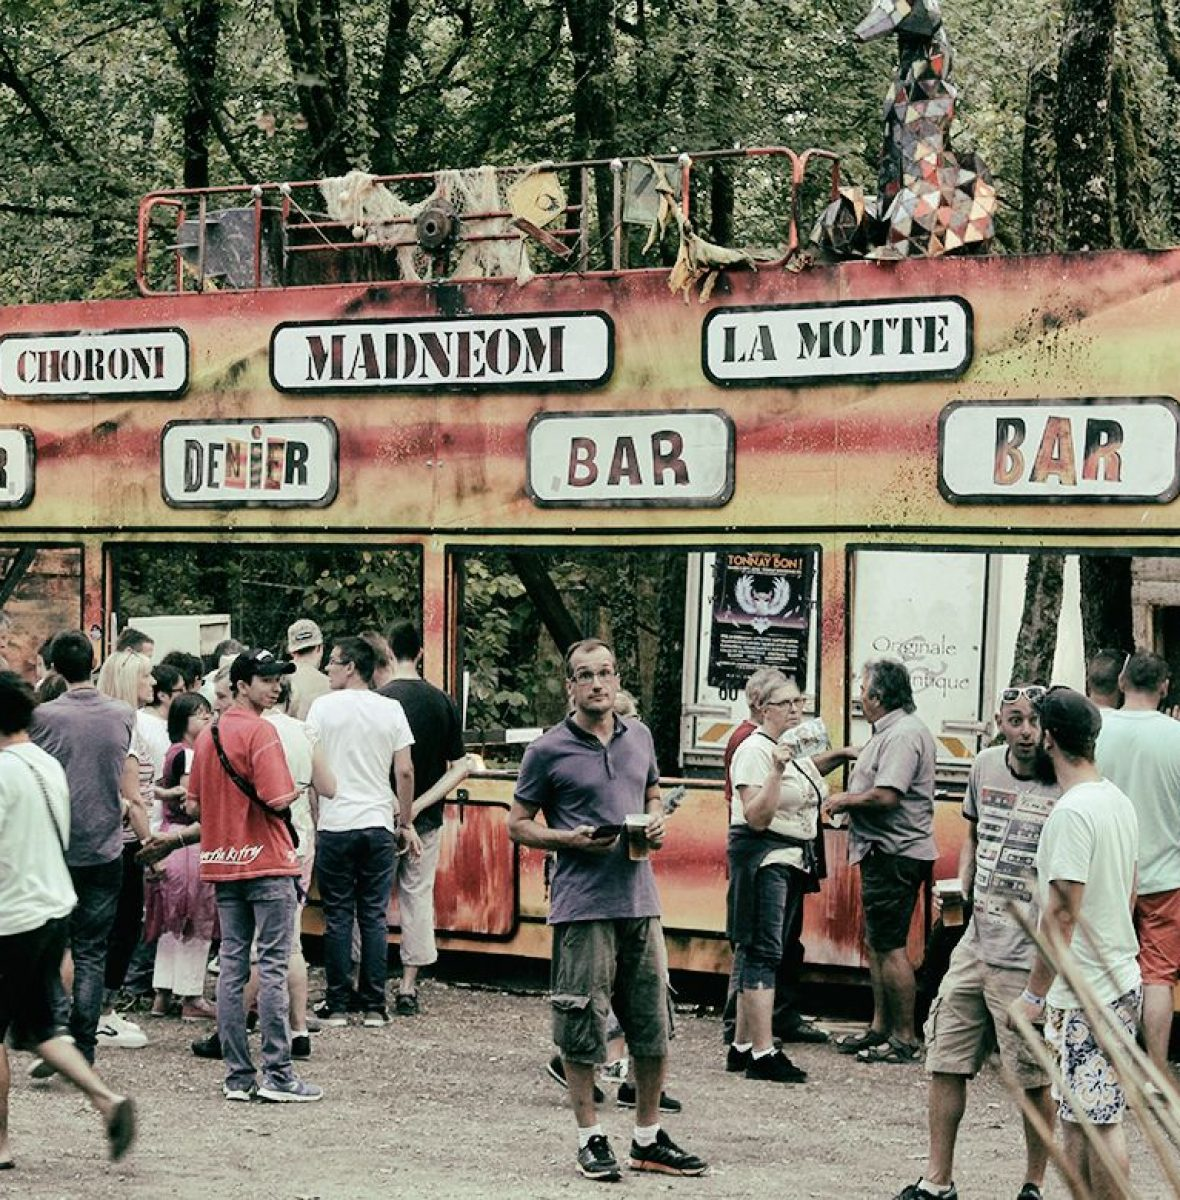 decor-bus-bar-festival-de-la-motte